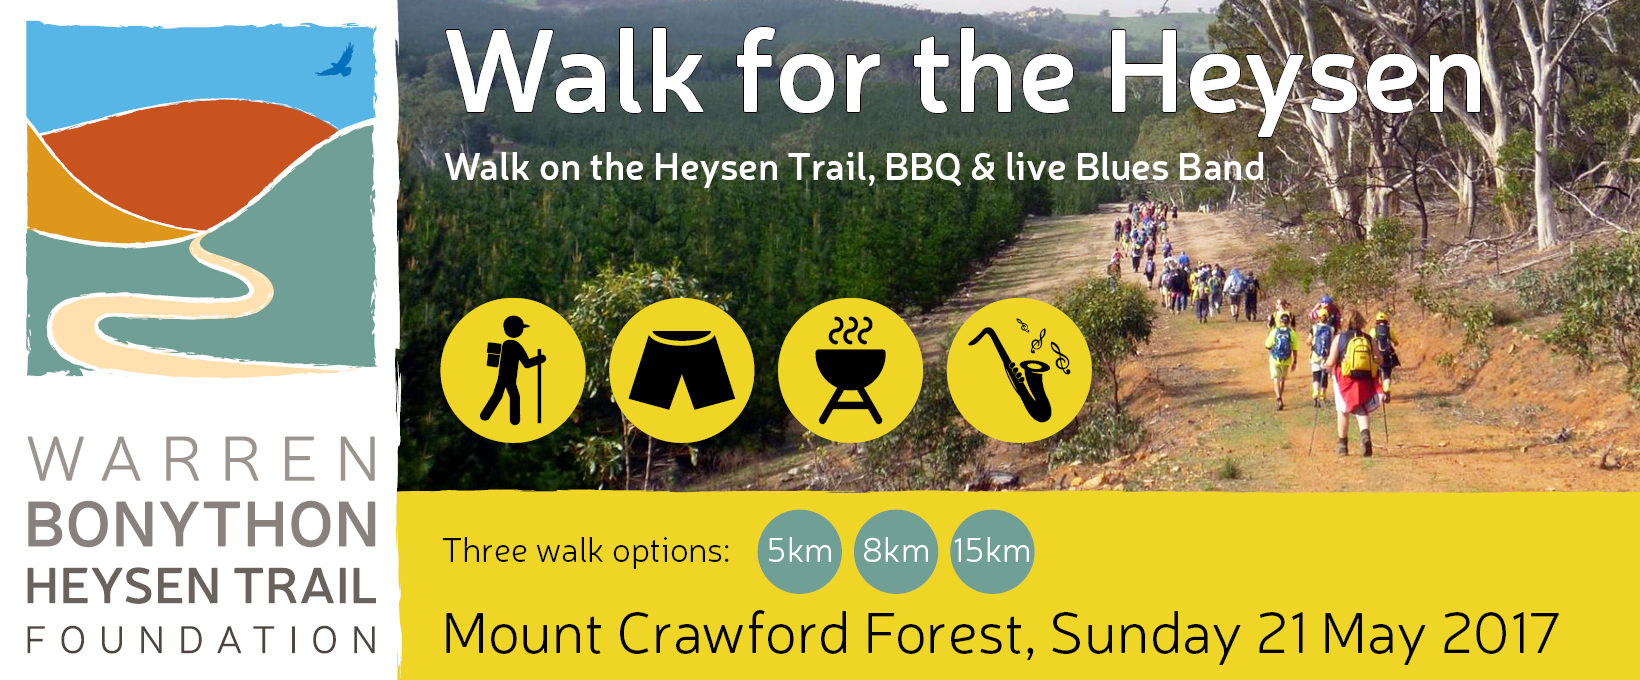 WBHTF Walk for the Heysen event, 21st May 2017